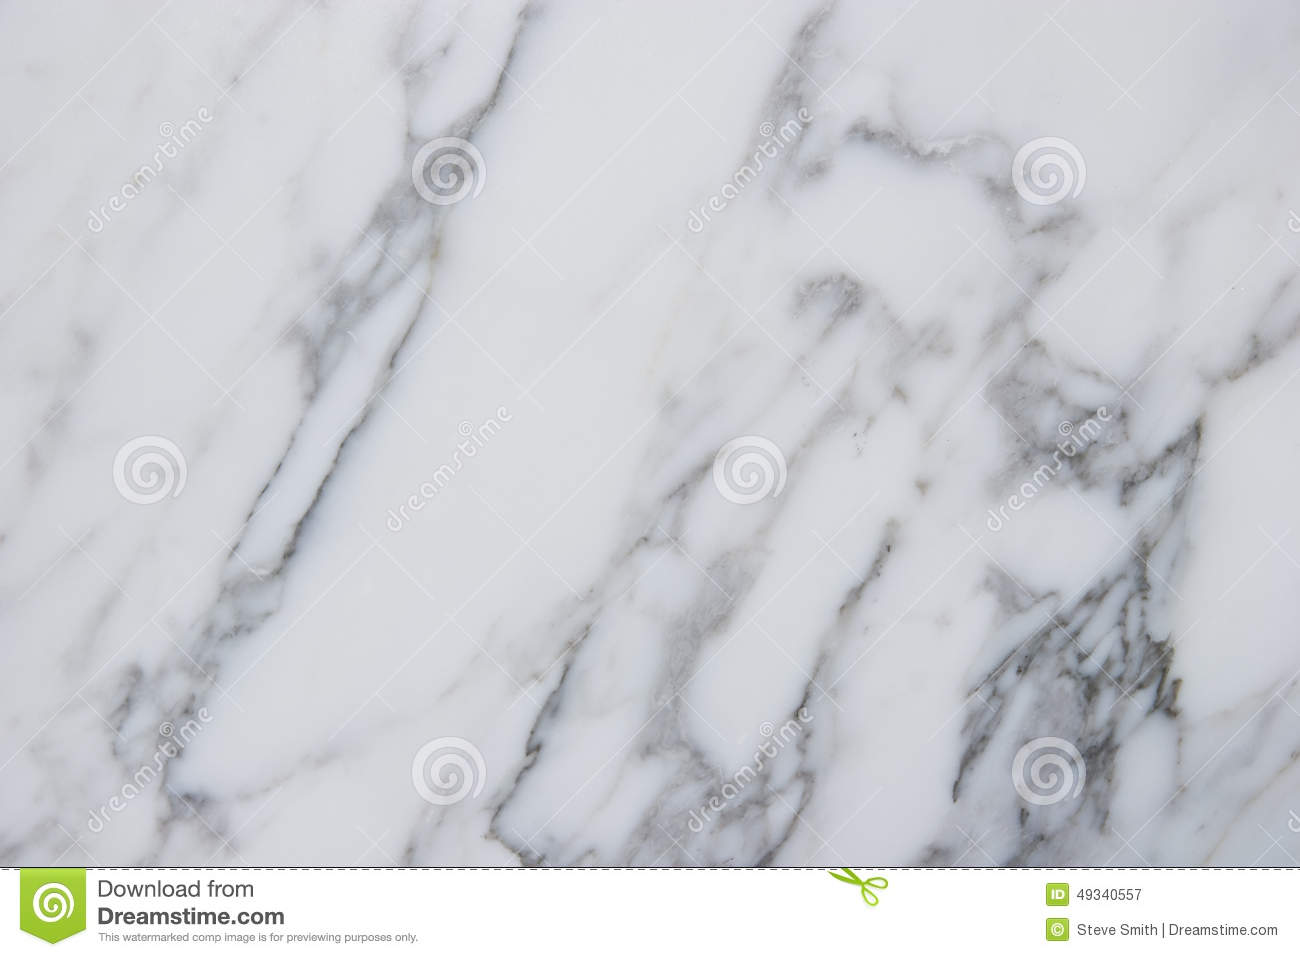 Natural Stone Backgrounds and Textures